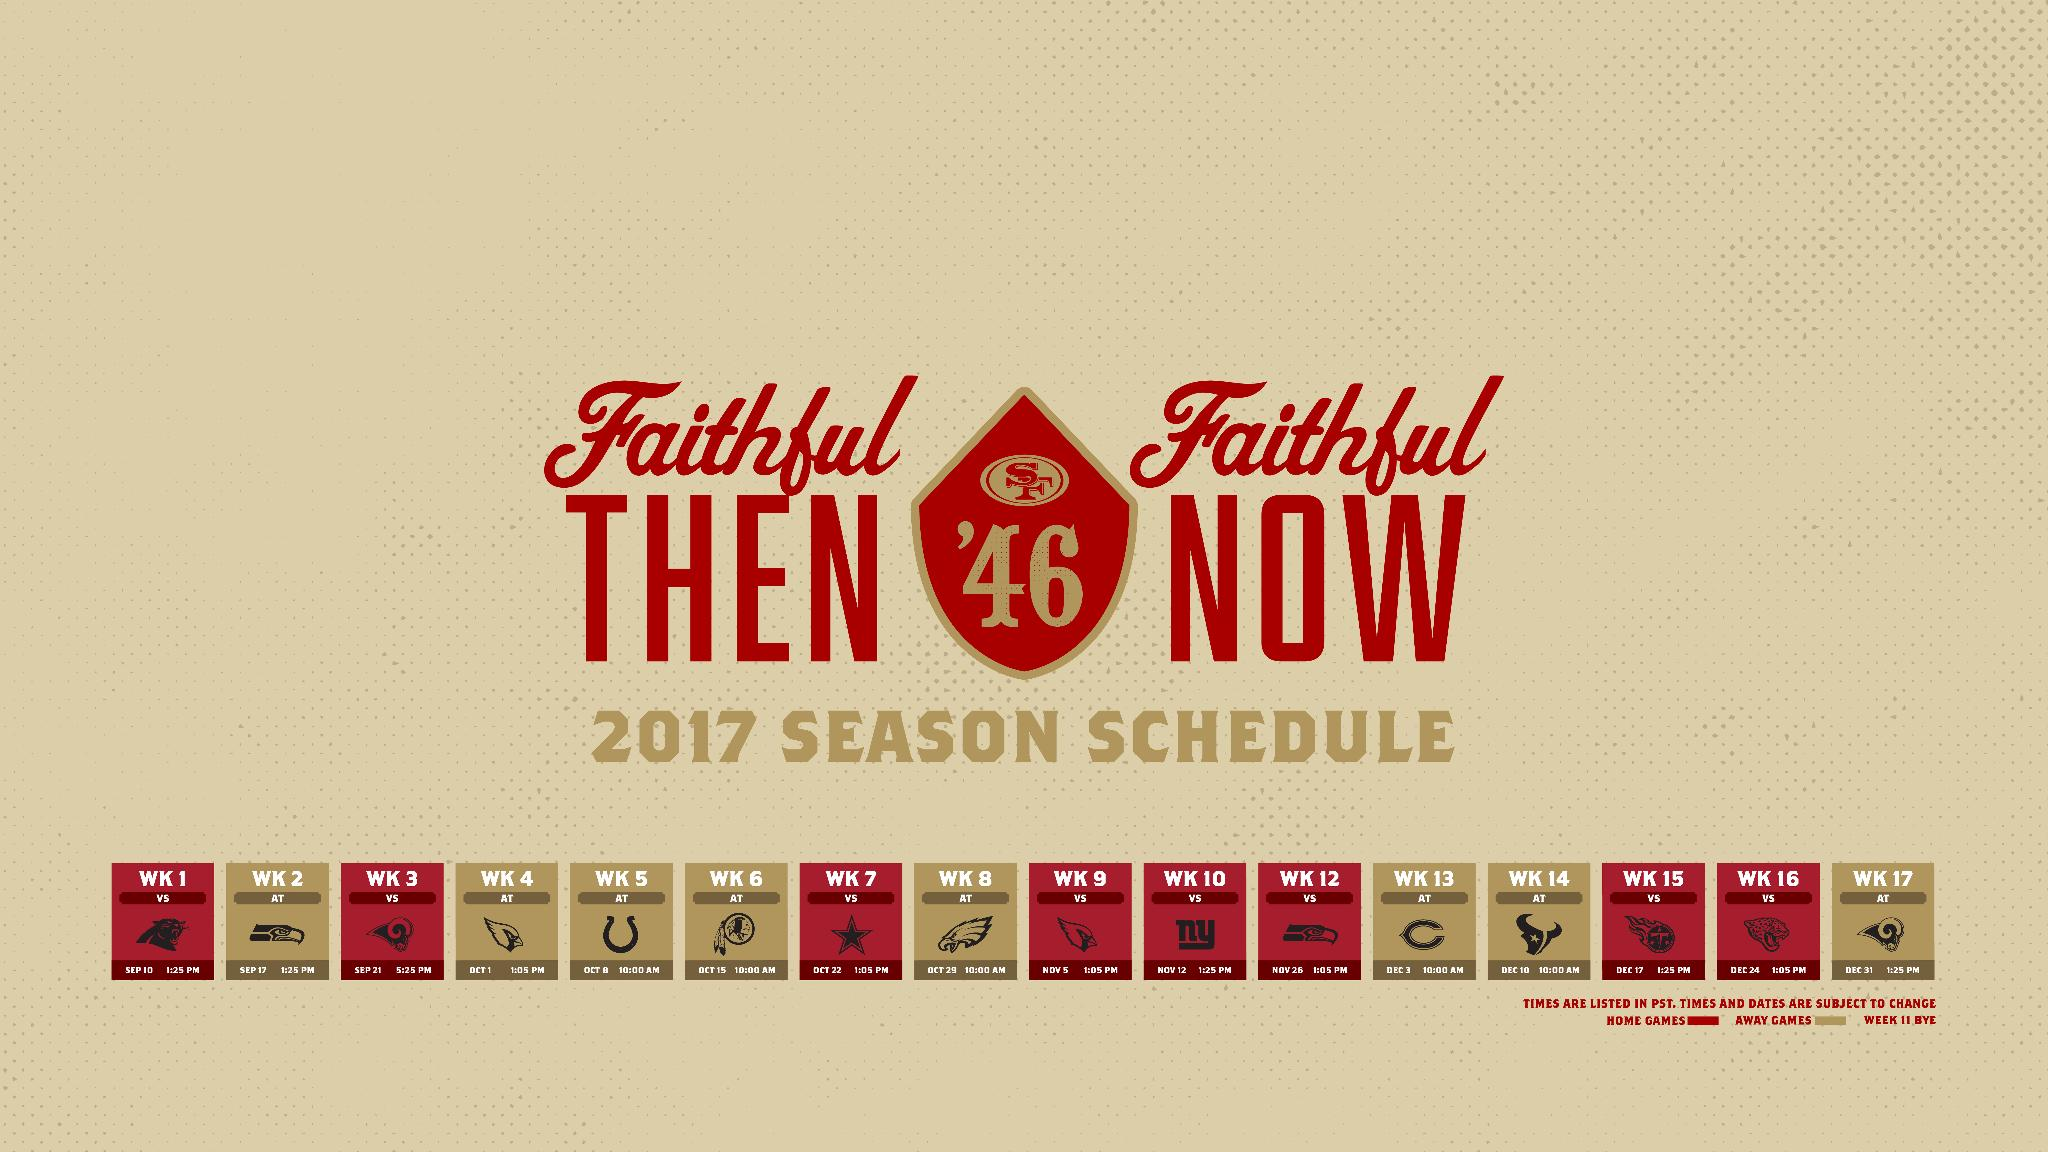 Need a new lock screen or desktop background?  https://t.co/AmEX2hd0YF has got you!  #FaithfulThen  #FaithfulNow https://t.co/pxUjdPDI85